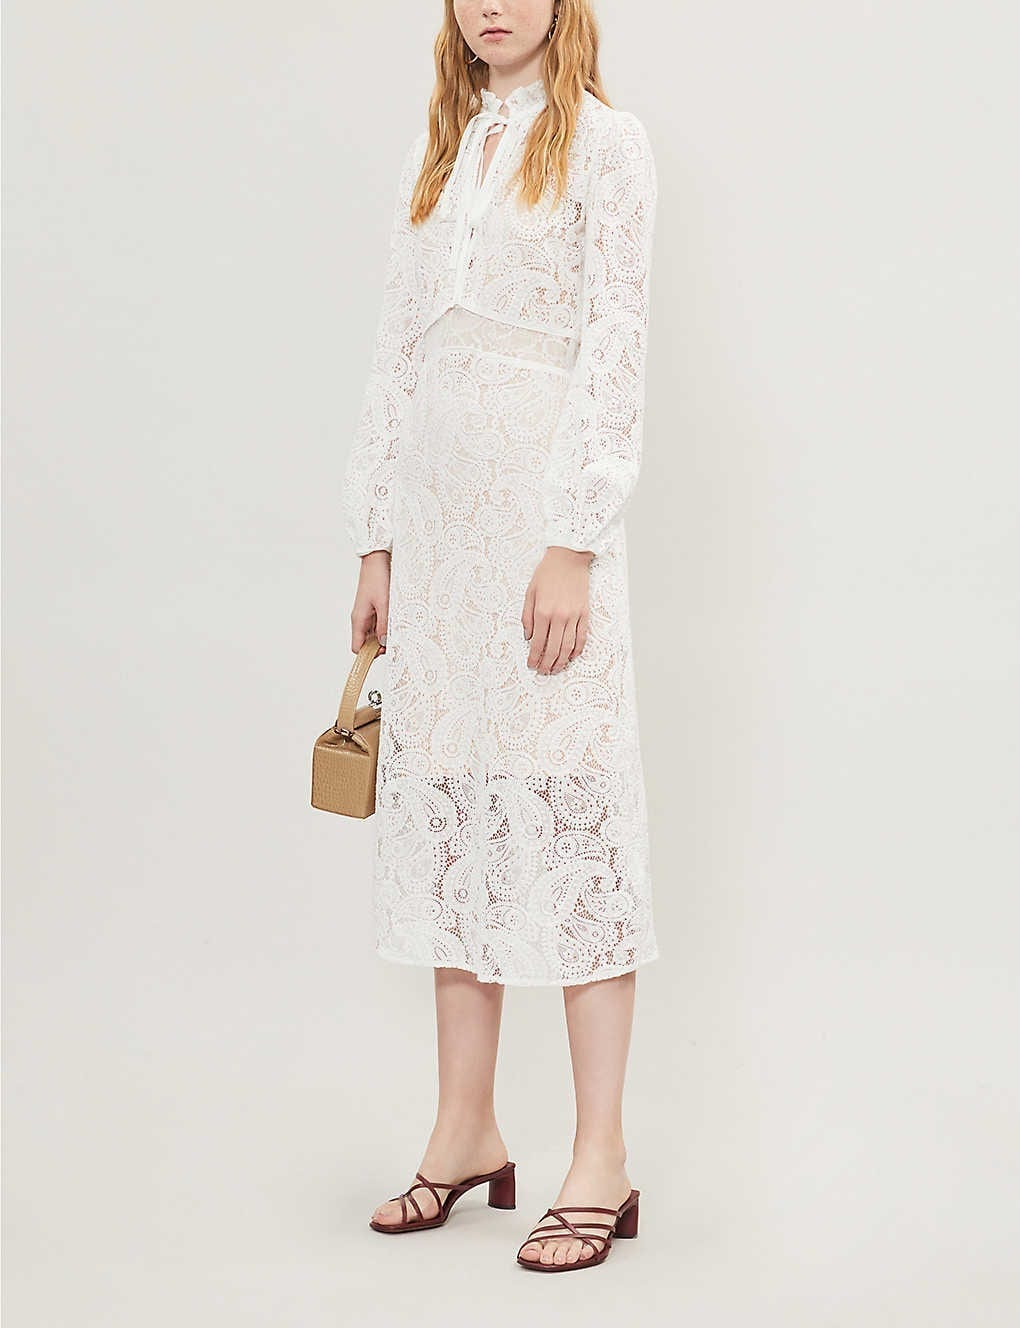 MAJE Paisley Lace Dress